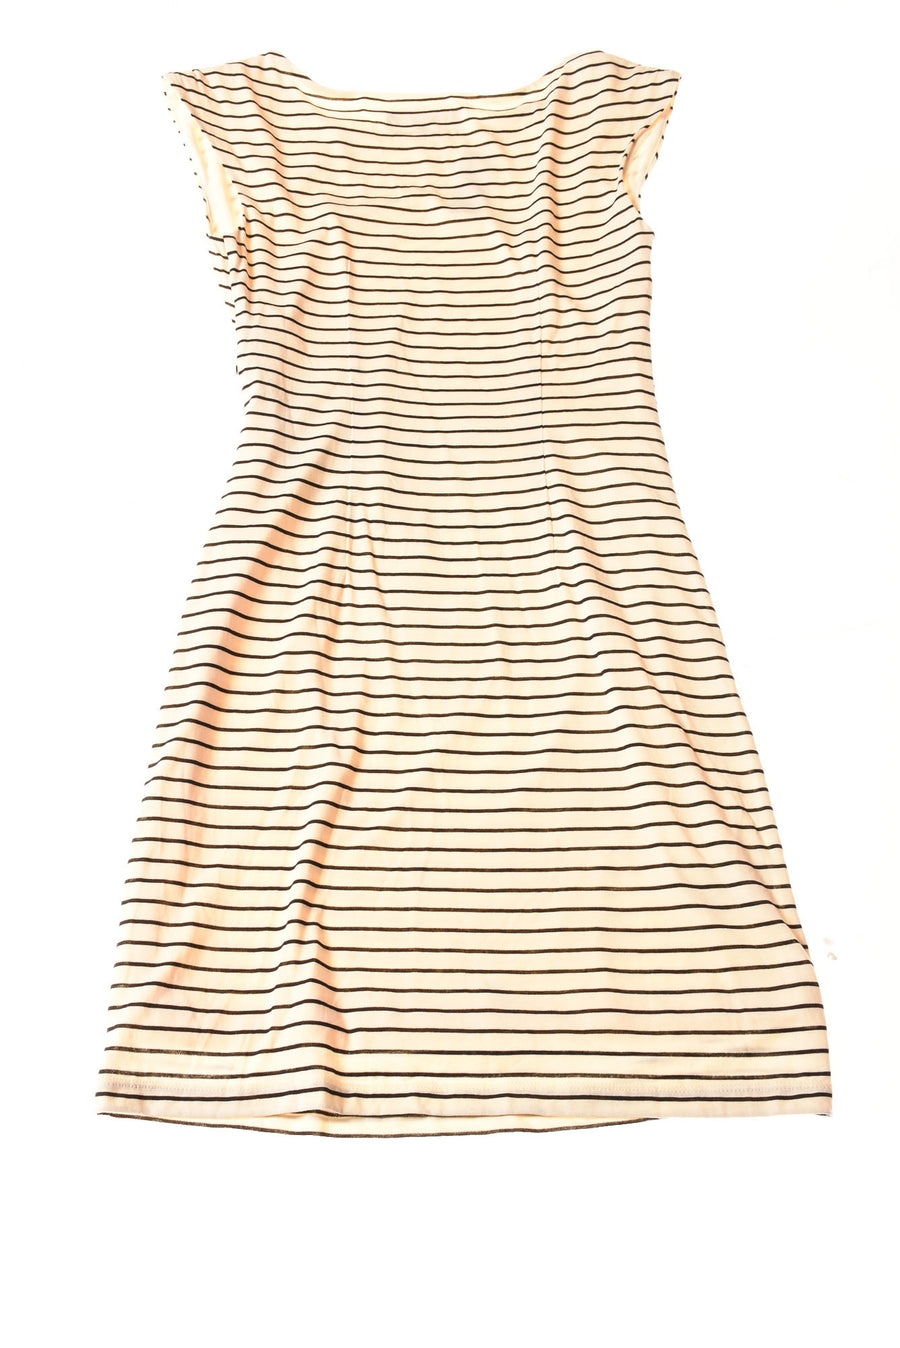 NEW Ann Taylor Loft Women's Dress X-Small Ivory / Striped